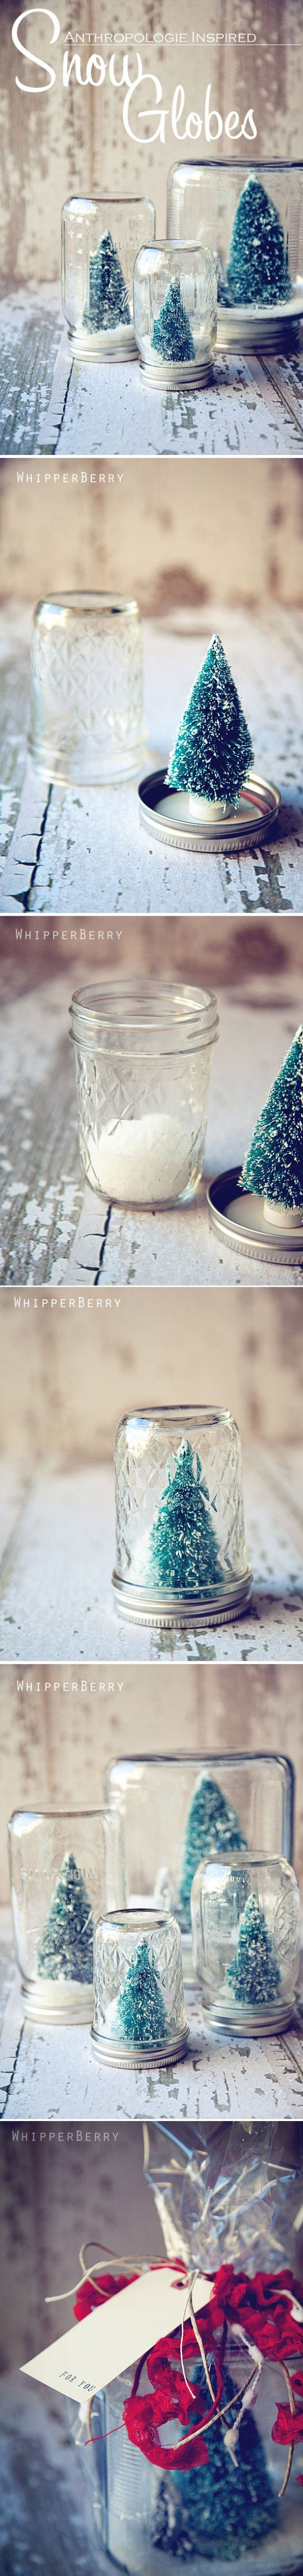 Snow Globes. This is charming!